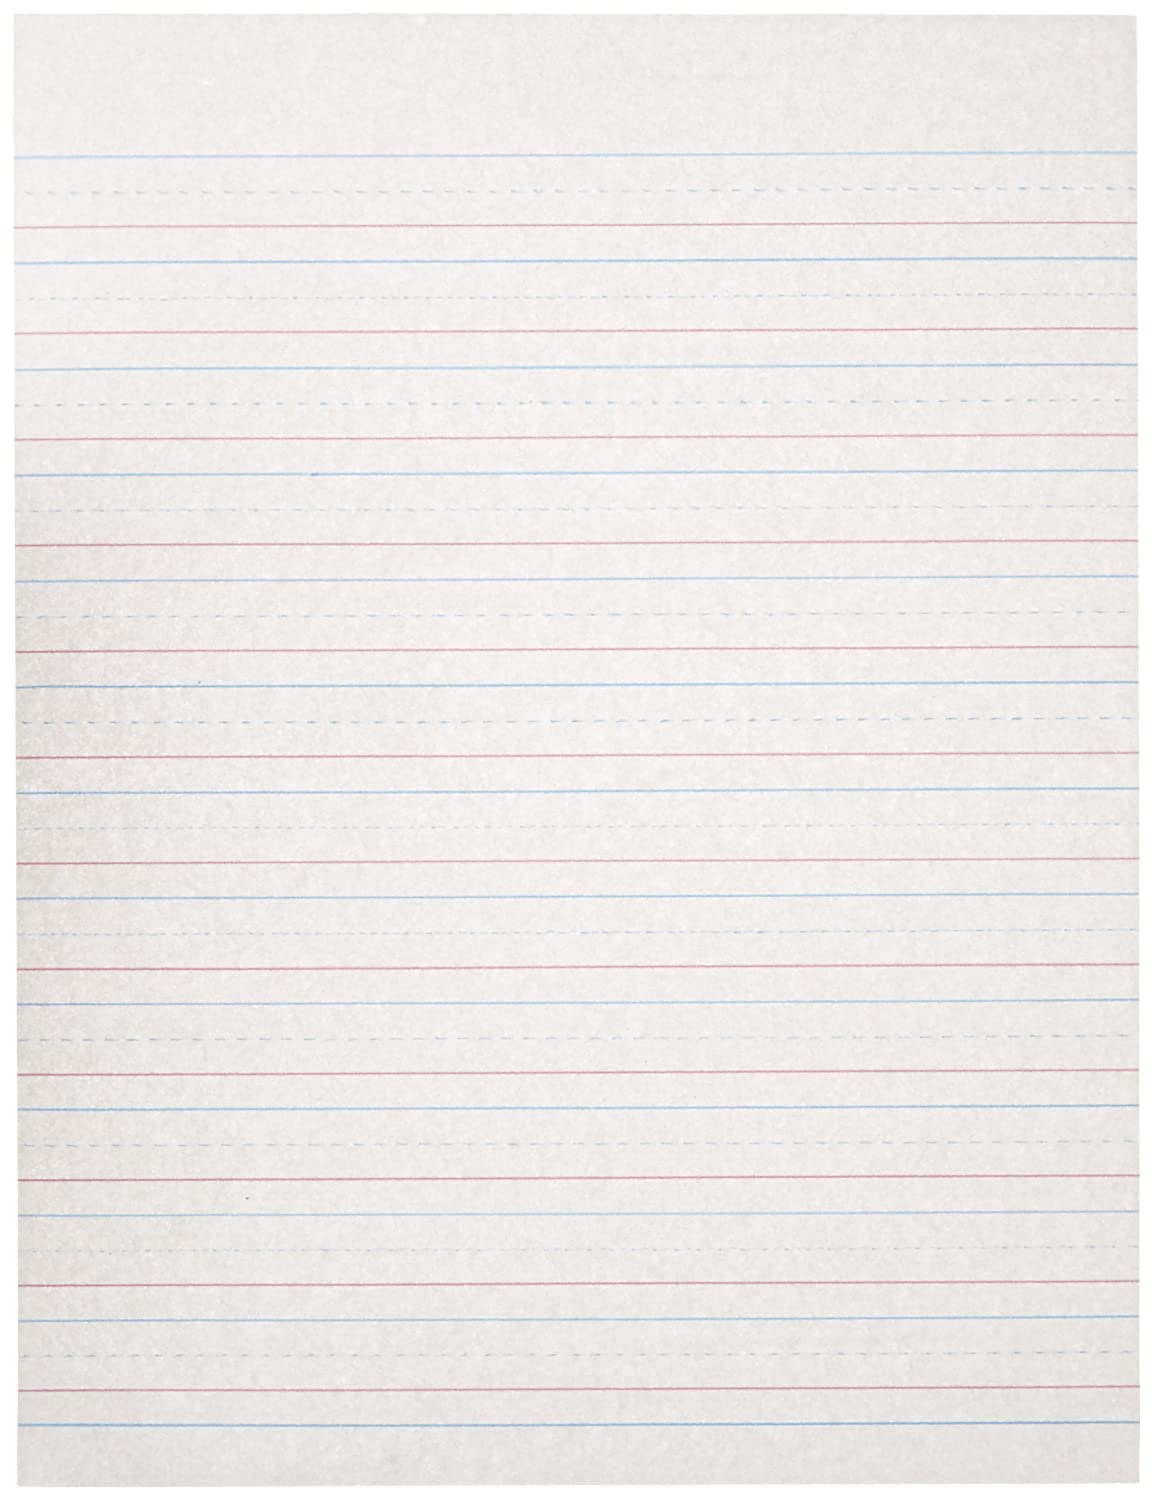 ruled paper for handwriting Primary handwriting notebooks office  writing practice paper: handwriting ruled, penmanship practice paper notebook letters & words with dashed center line .